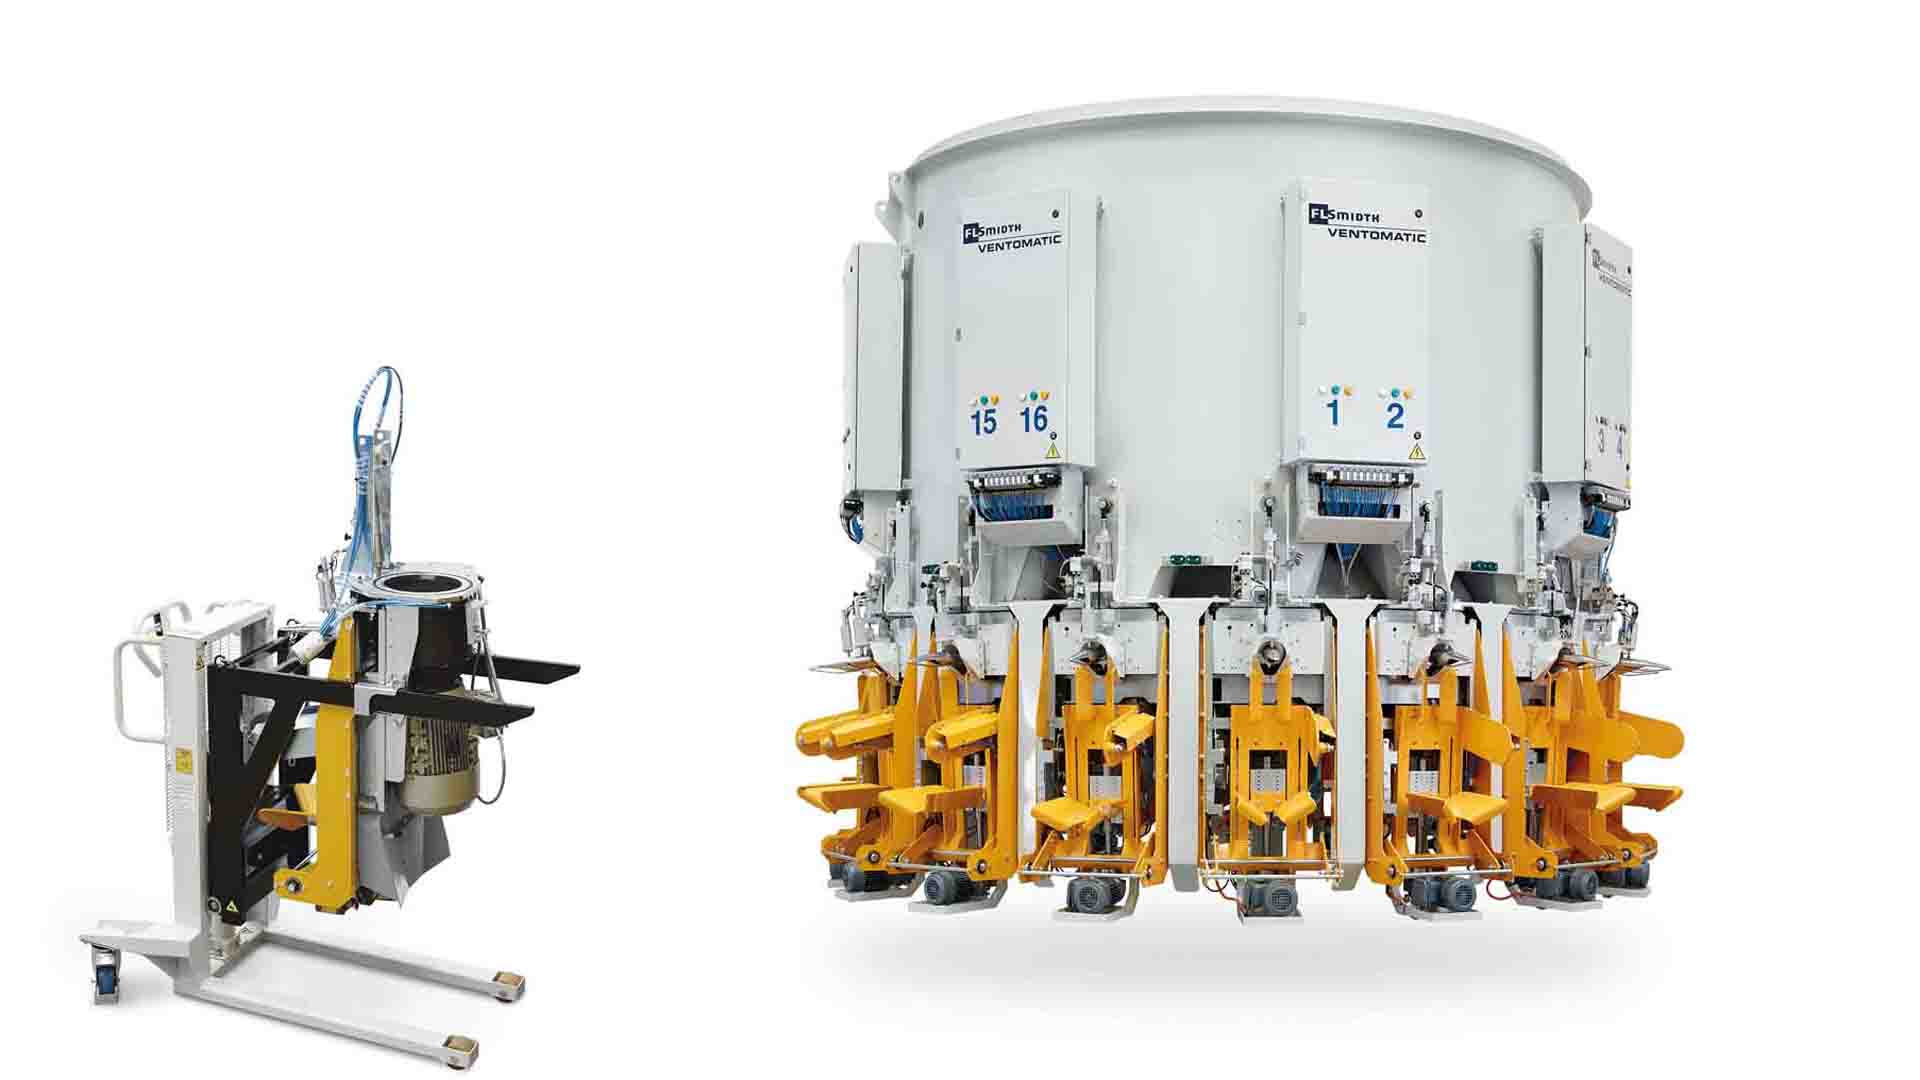 """VENTOMATIC GIROMAT filling unit can be use as """"spare part"""" replacing one installed fpr maintenance"""